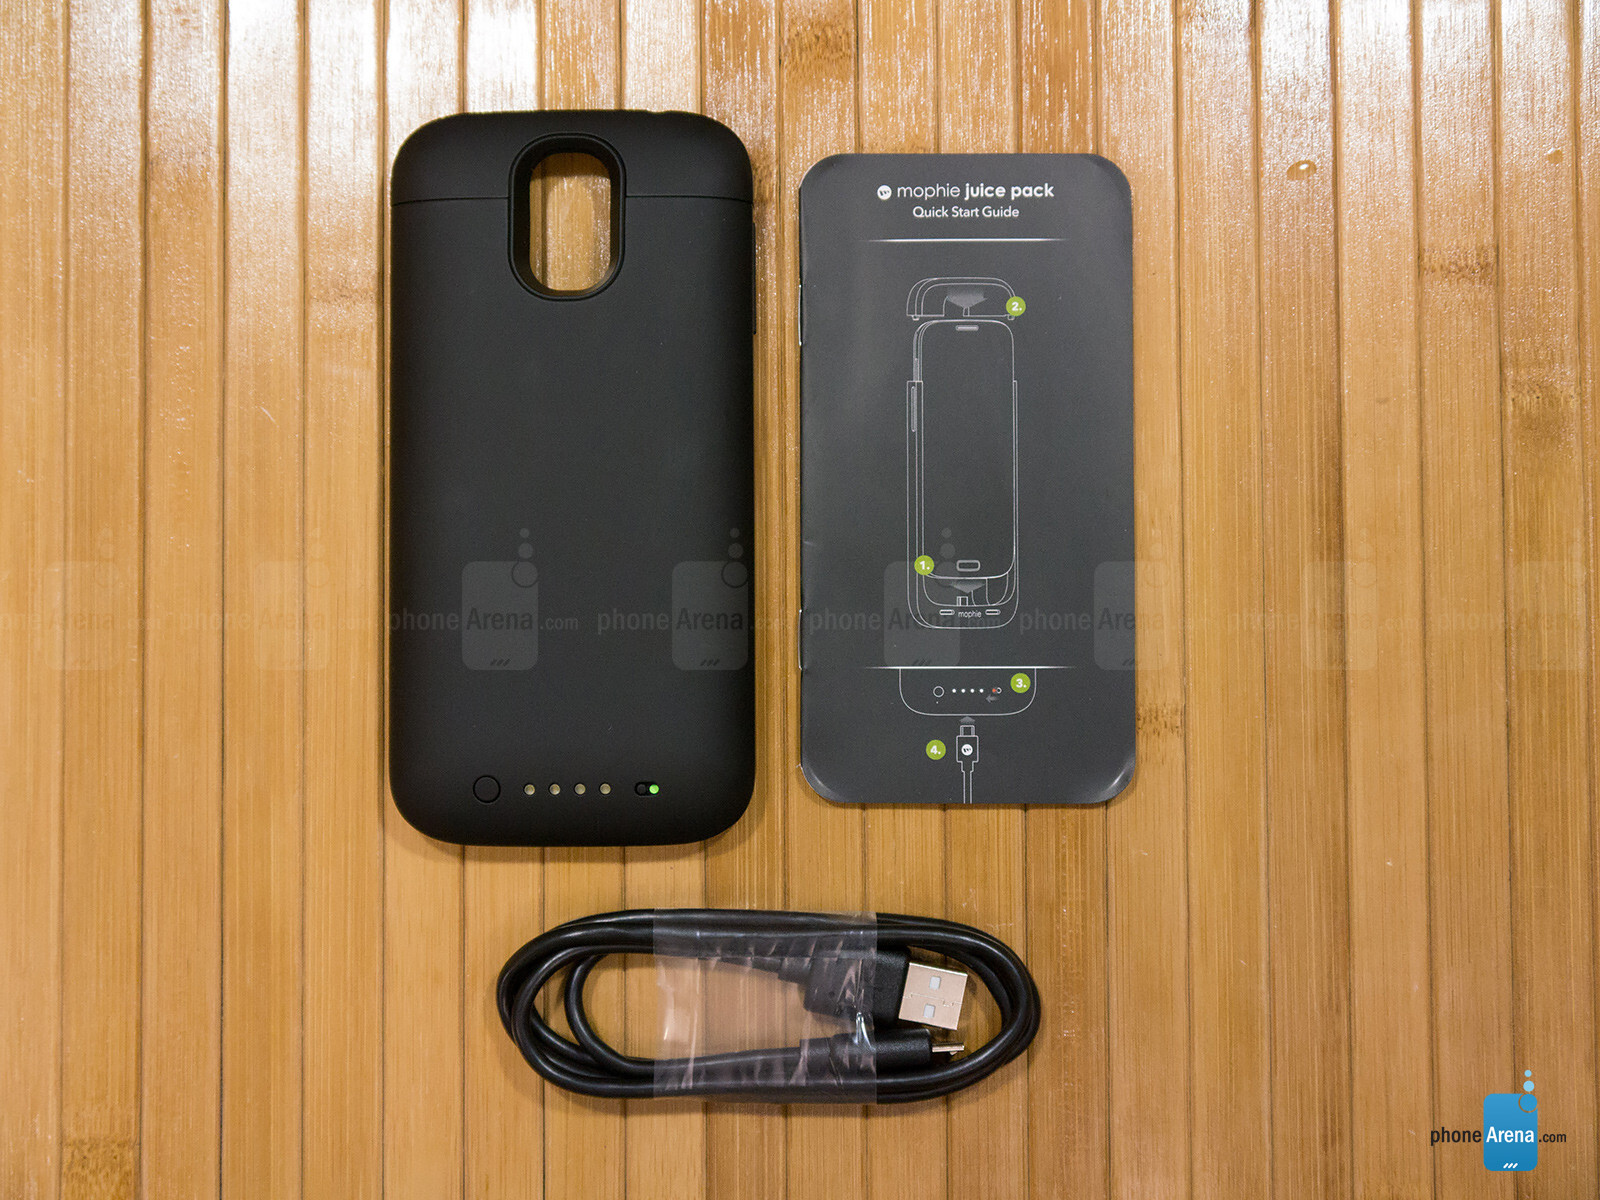 on sale 37a09 27c41 Mophie Samsung Galaxy S4 Juice Pack Review - PhoneArena